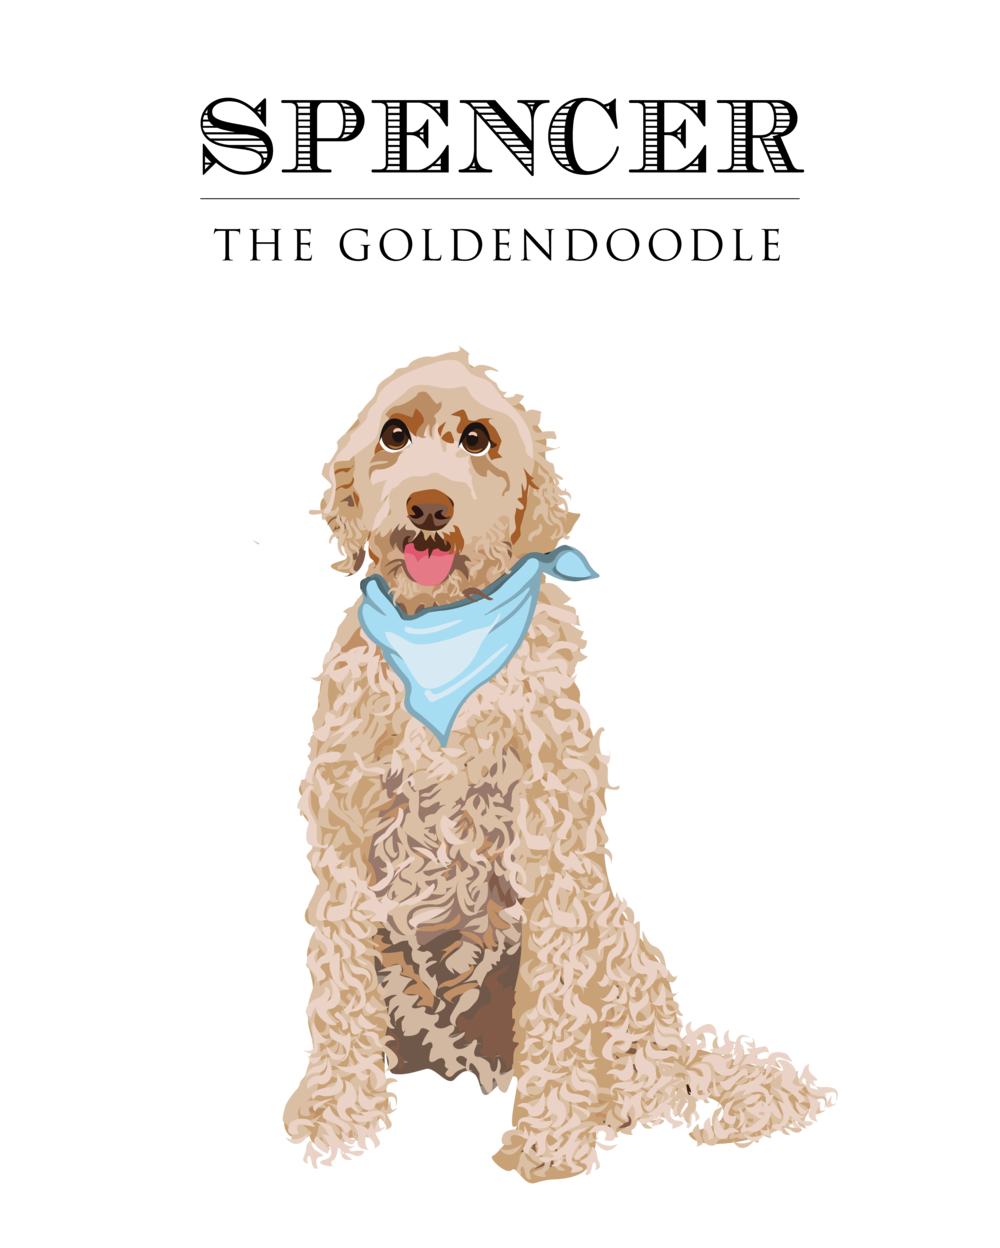 Final Design of Custom Clip Art - Here is the final design that Brittany approved. It is a beautiful vector illustration of her dog, Spencer the Goldendoodle. This type of design works wonderfully as a logo for doggie daycare, pet boarding, or a pet grooming business.